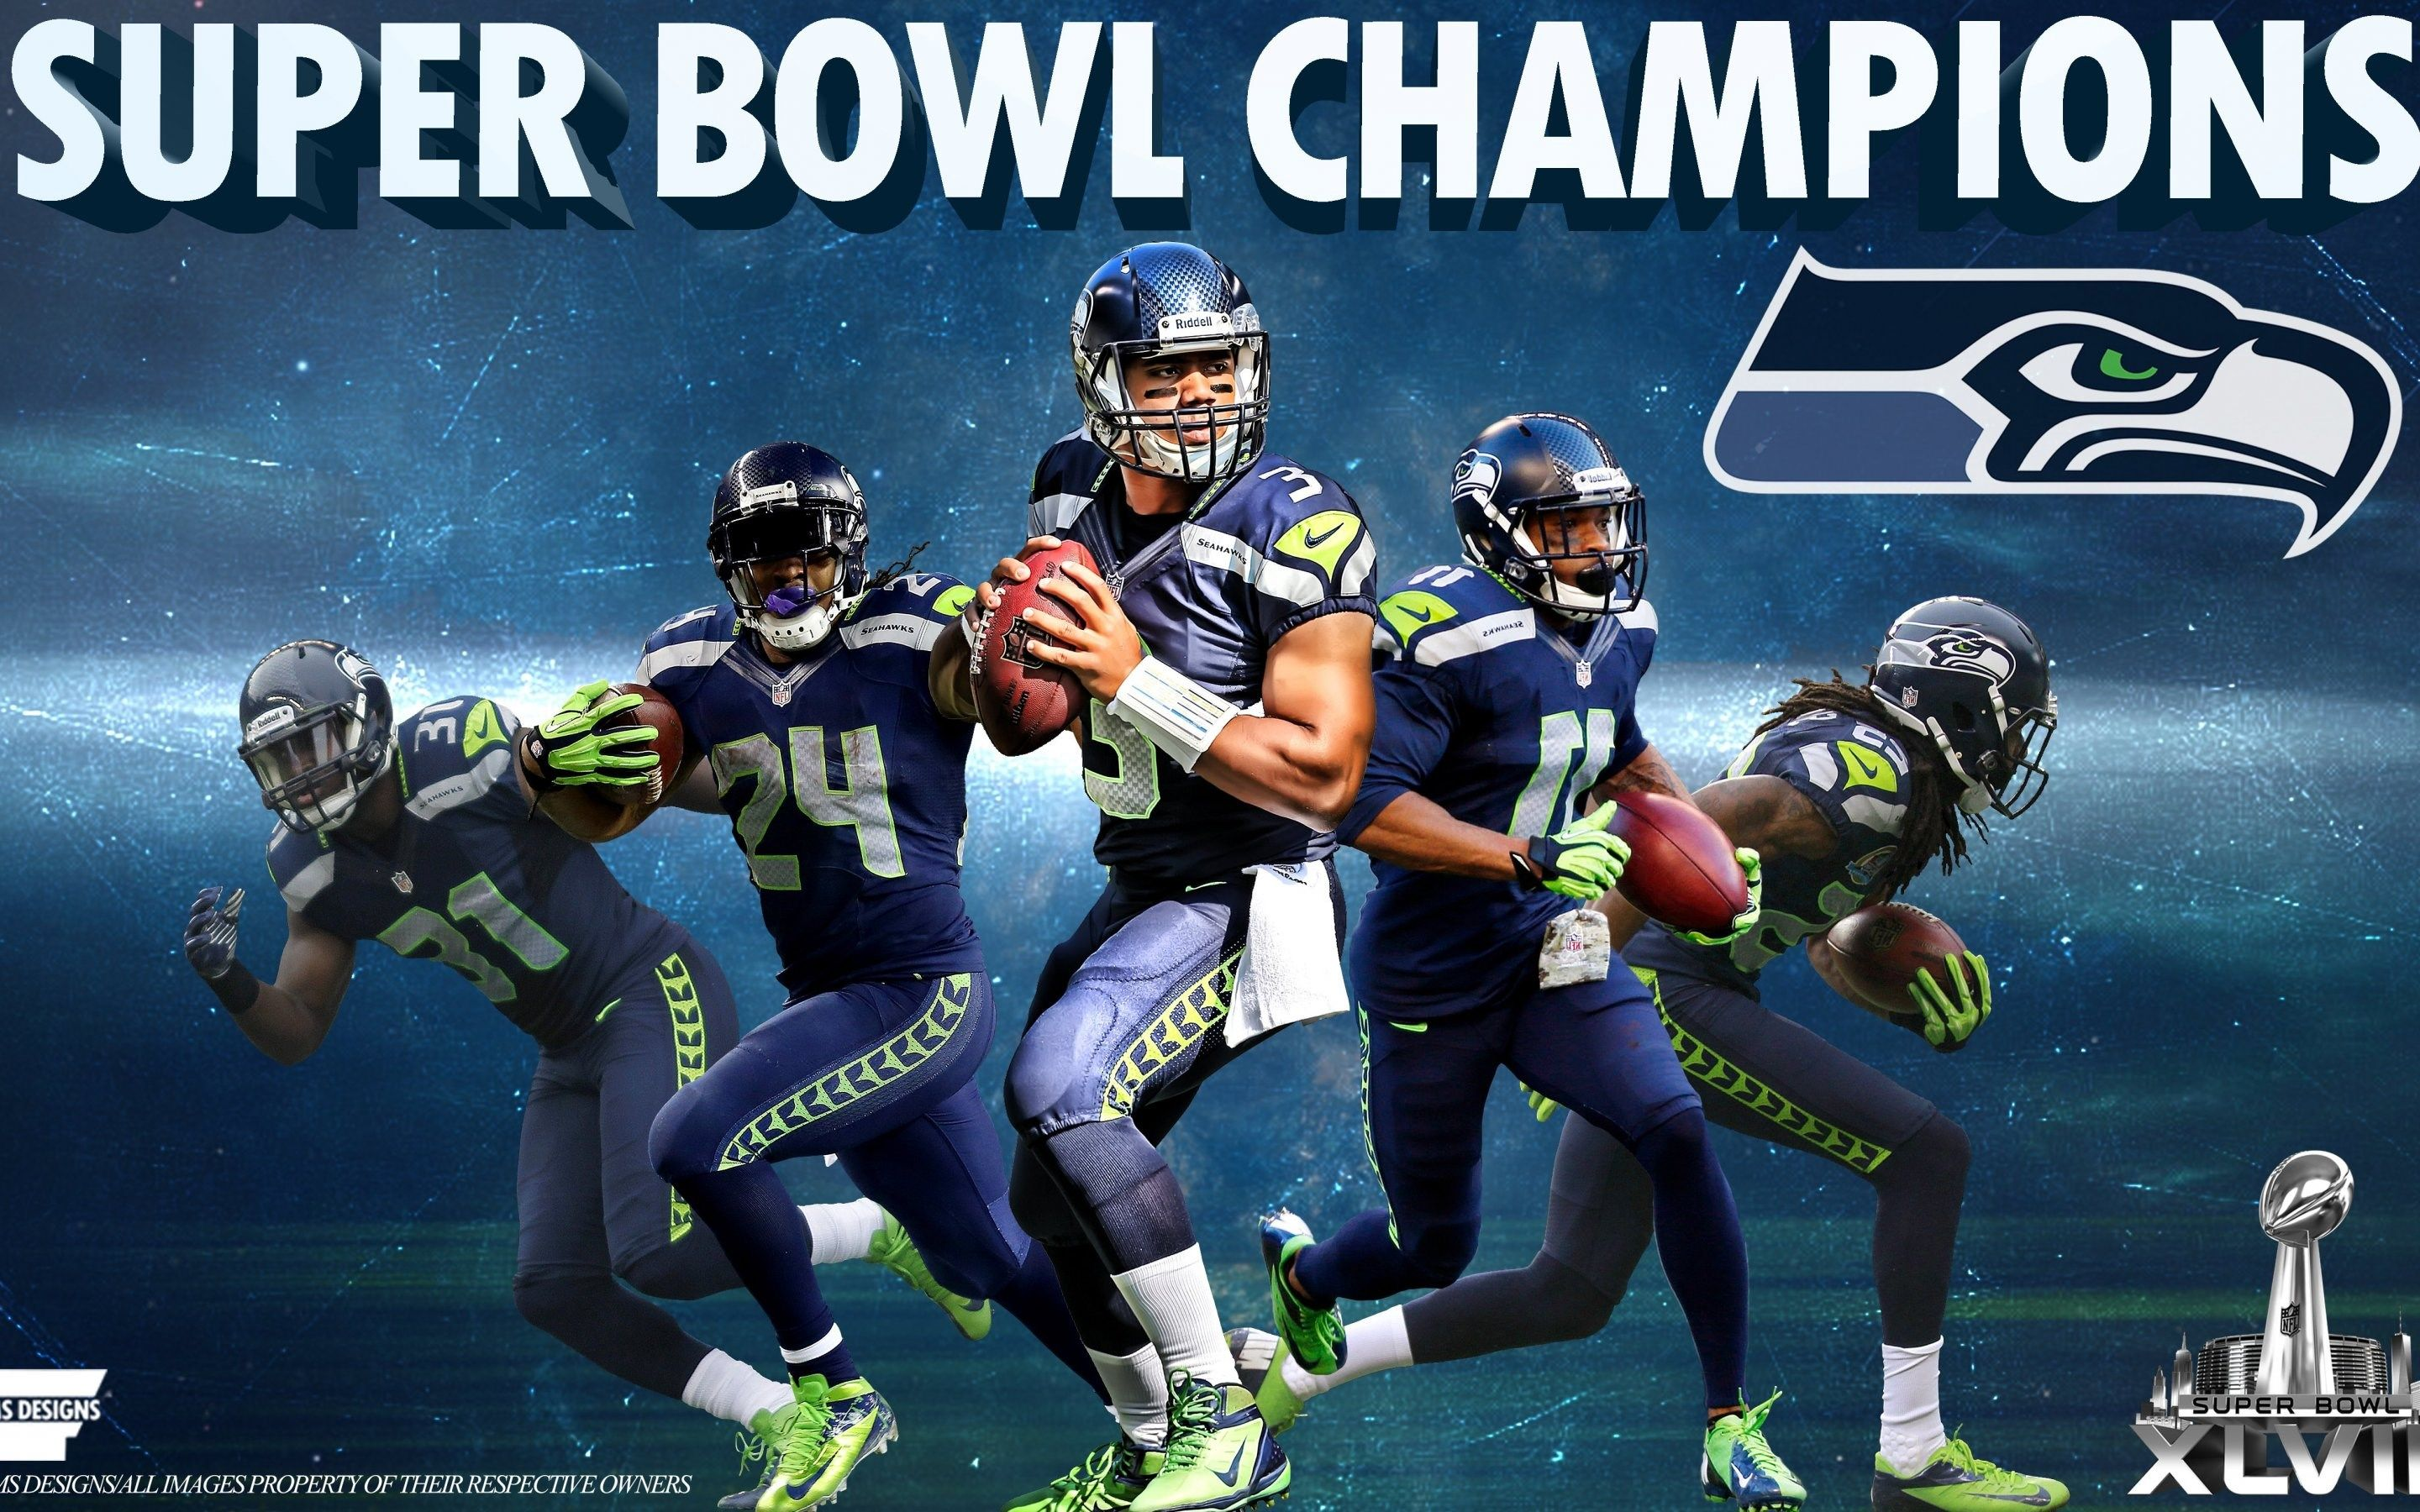 Super bowl champions seattle seahawk hd wallpapers - Super bowl wallpaper ...